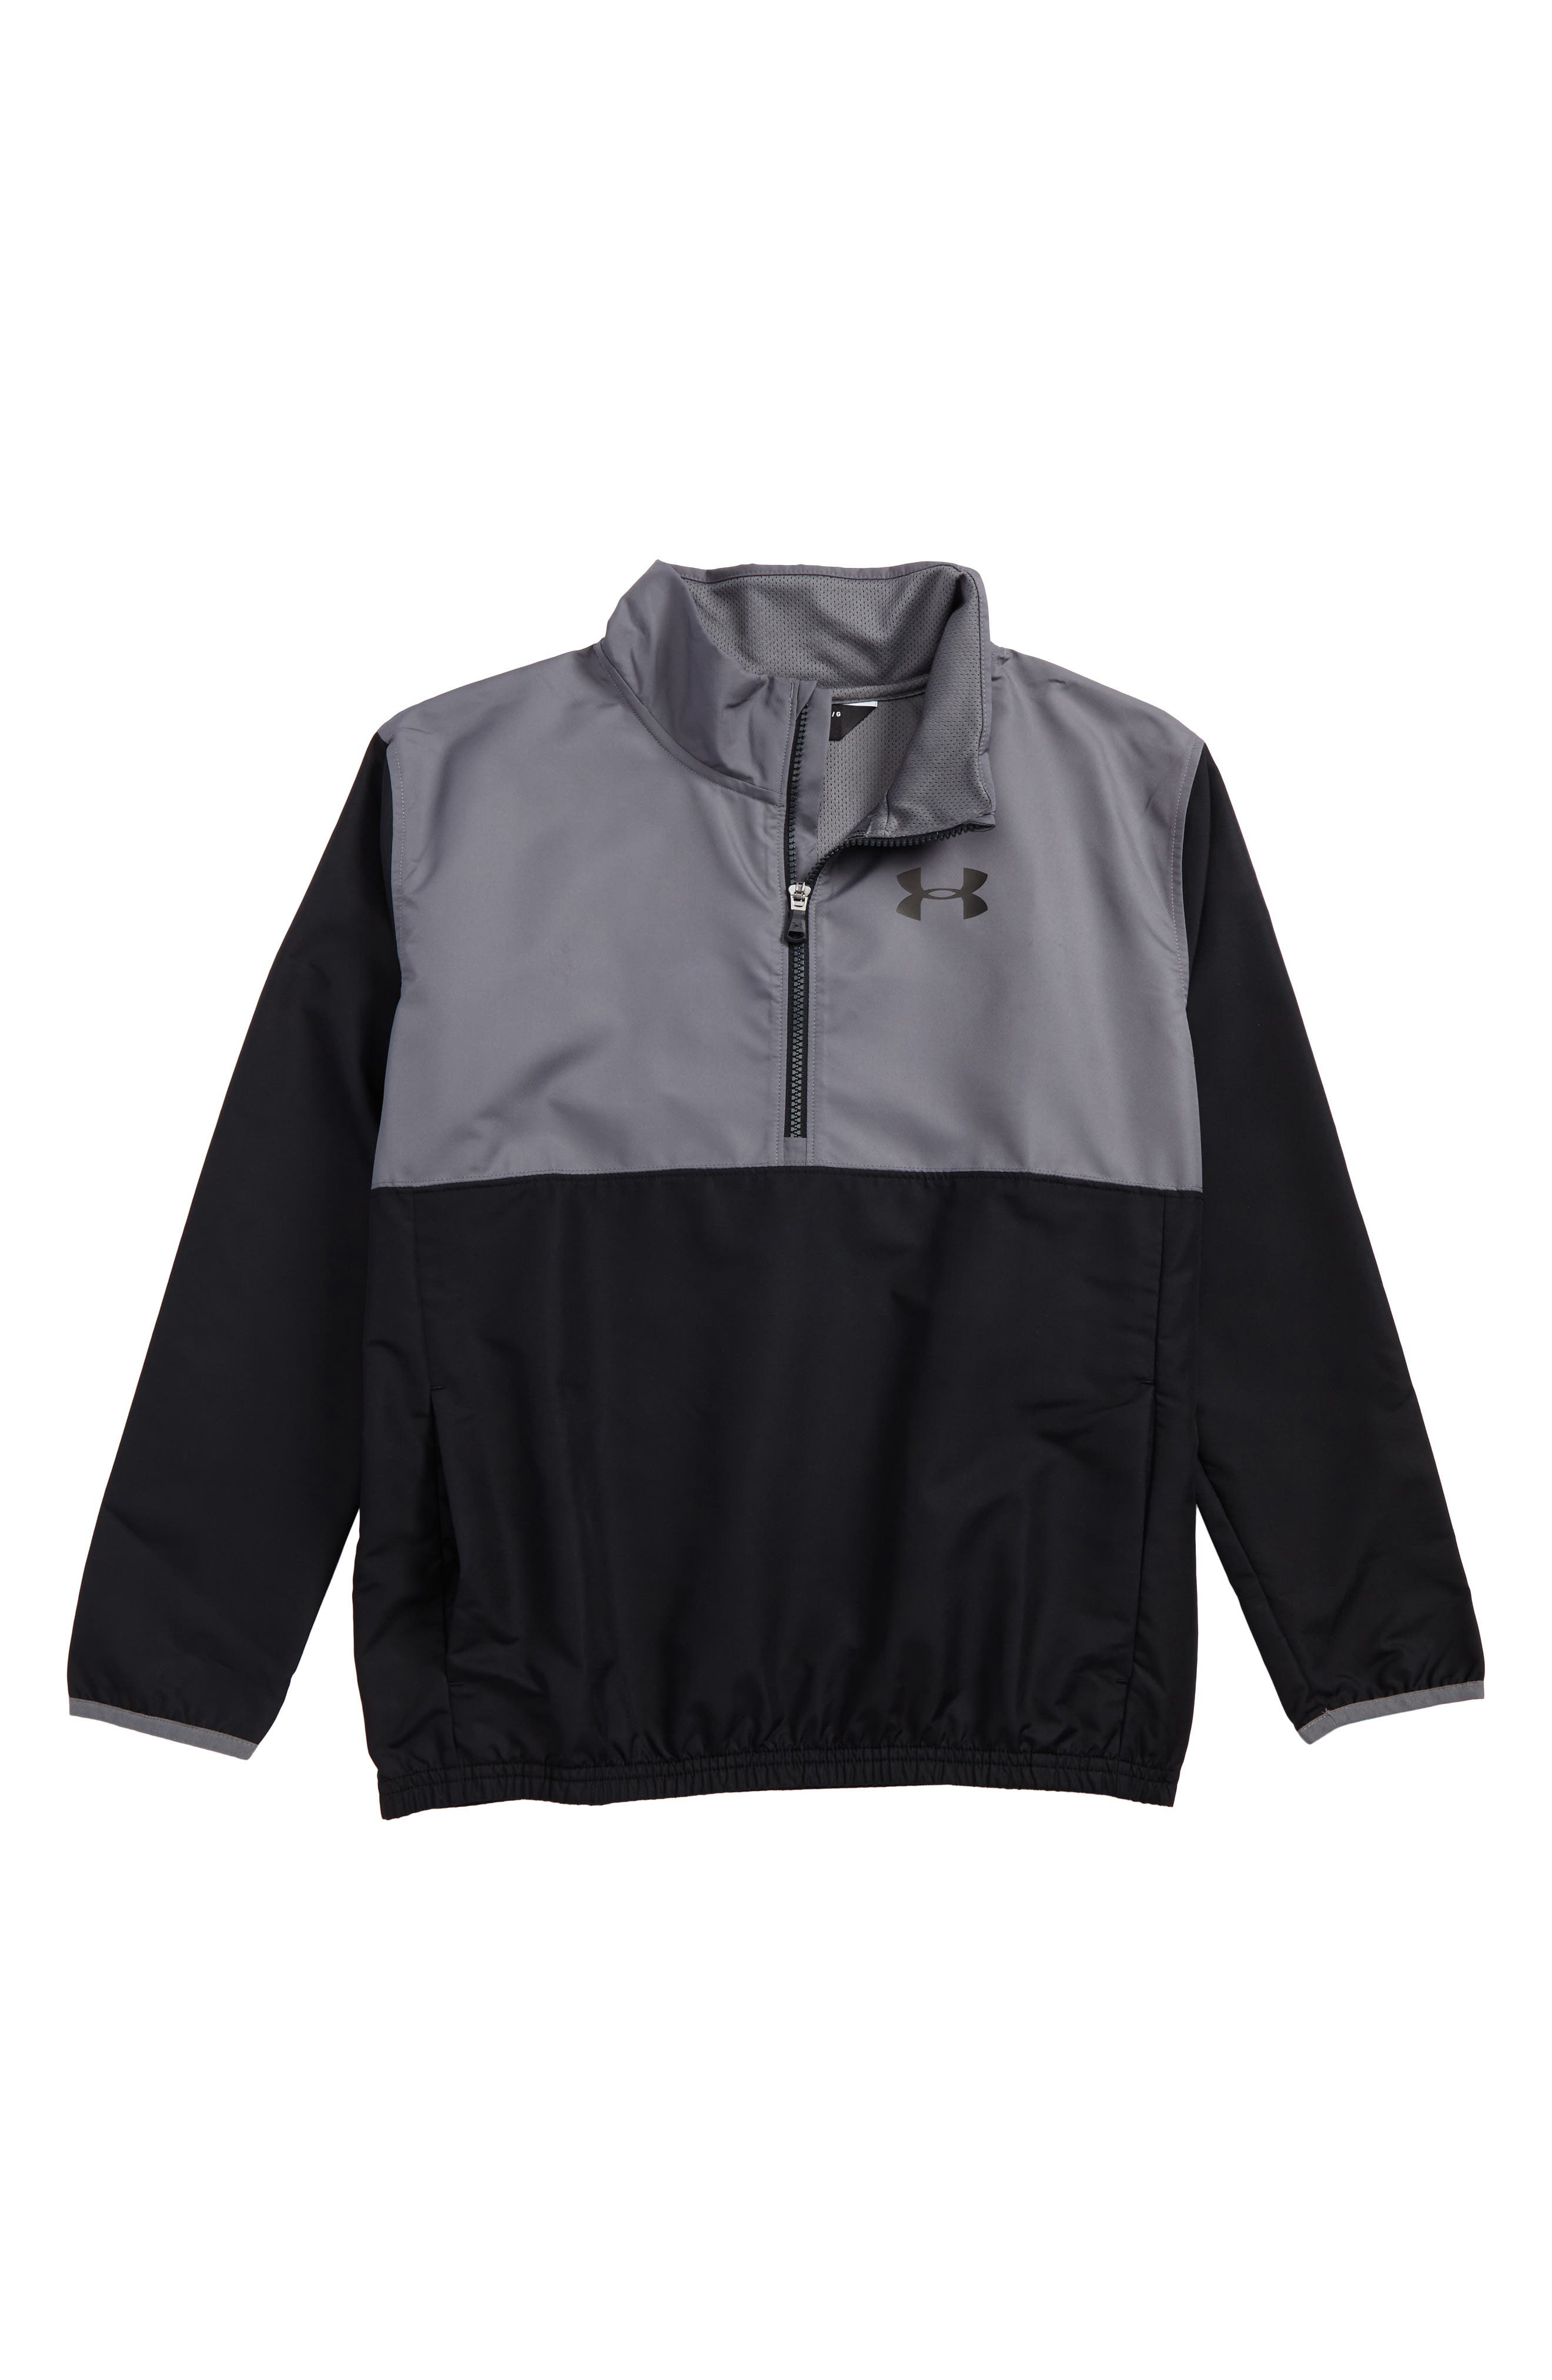 Train to Game Half Zip Pullover,                             Main thumbnail 1, color,                             001